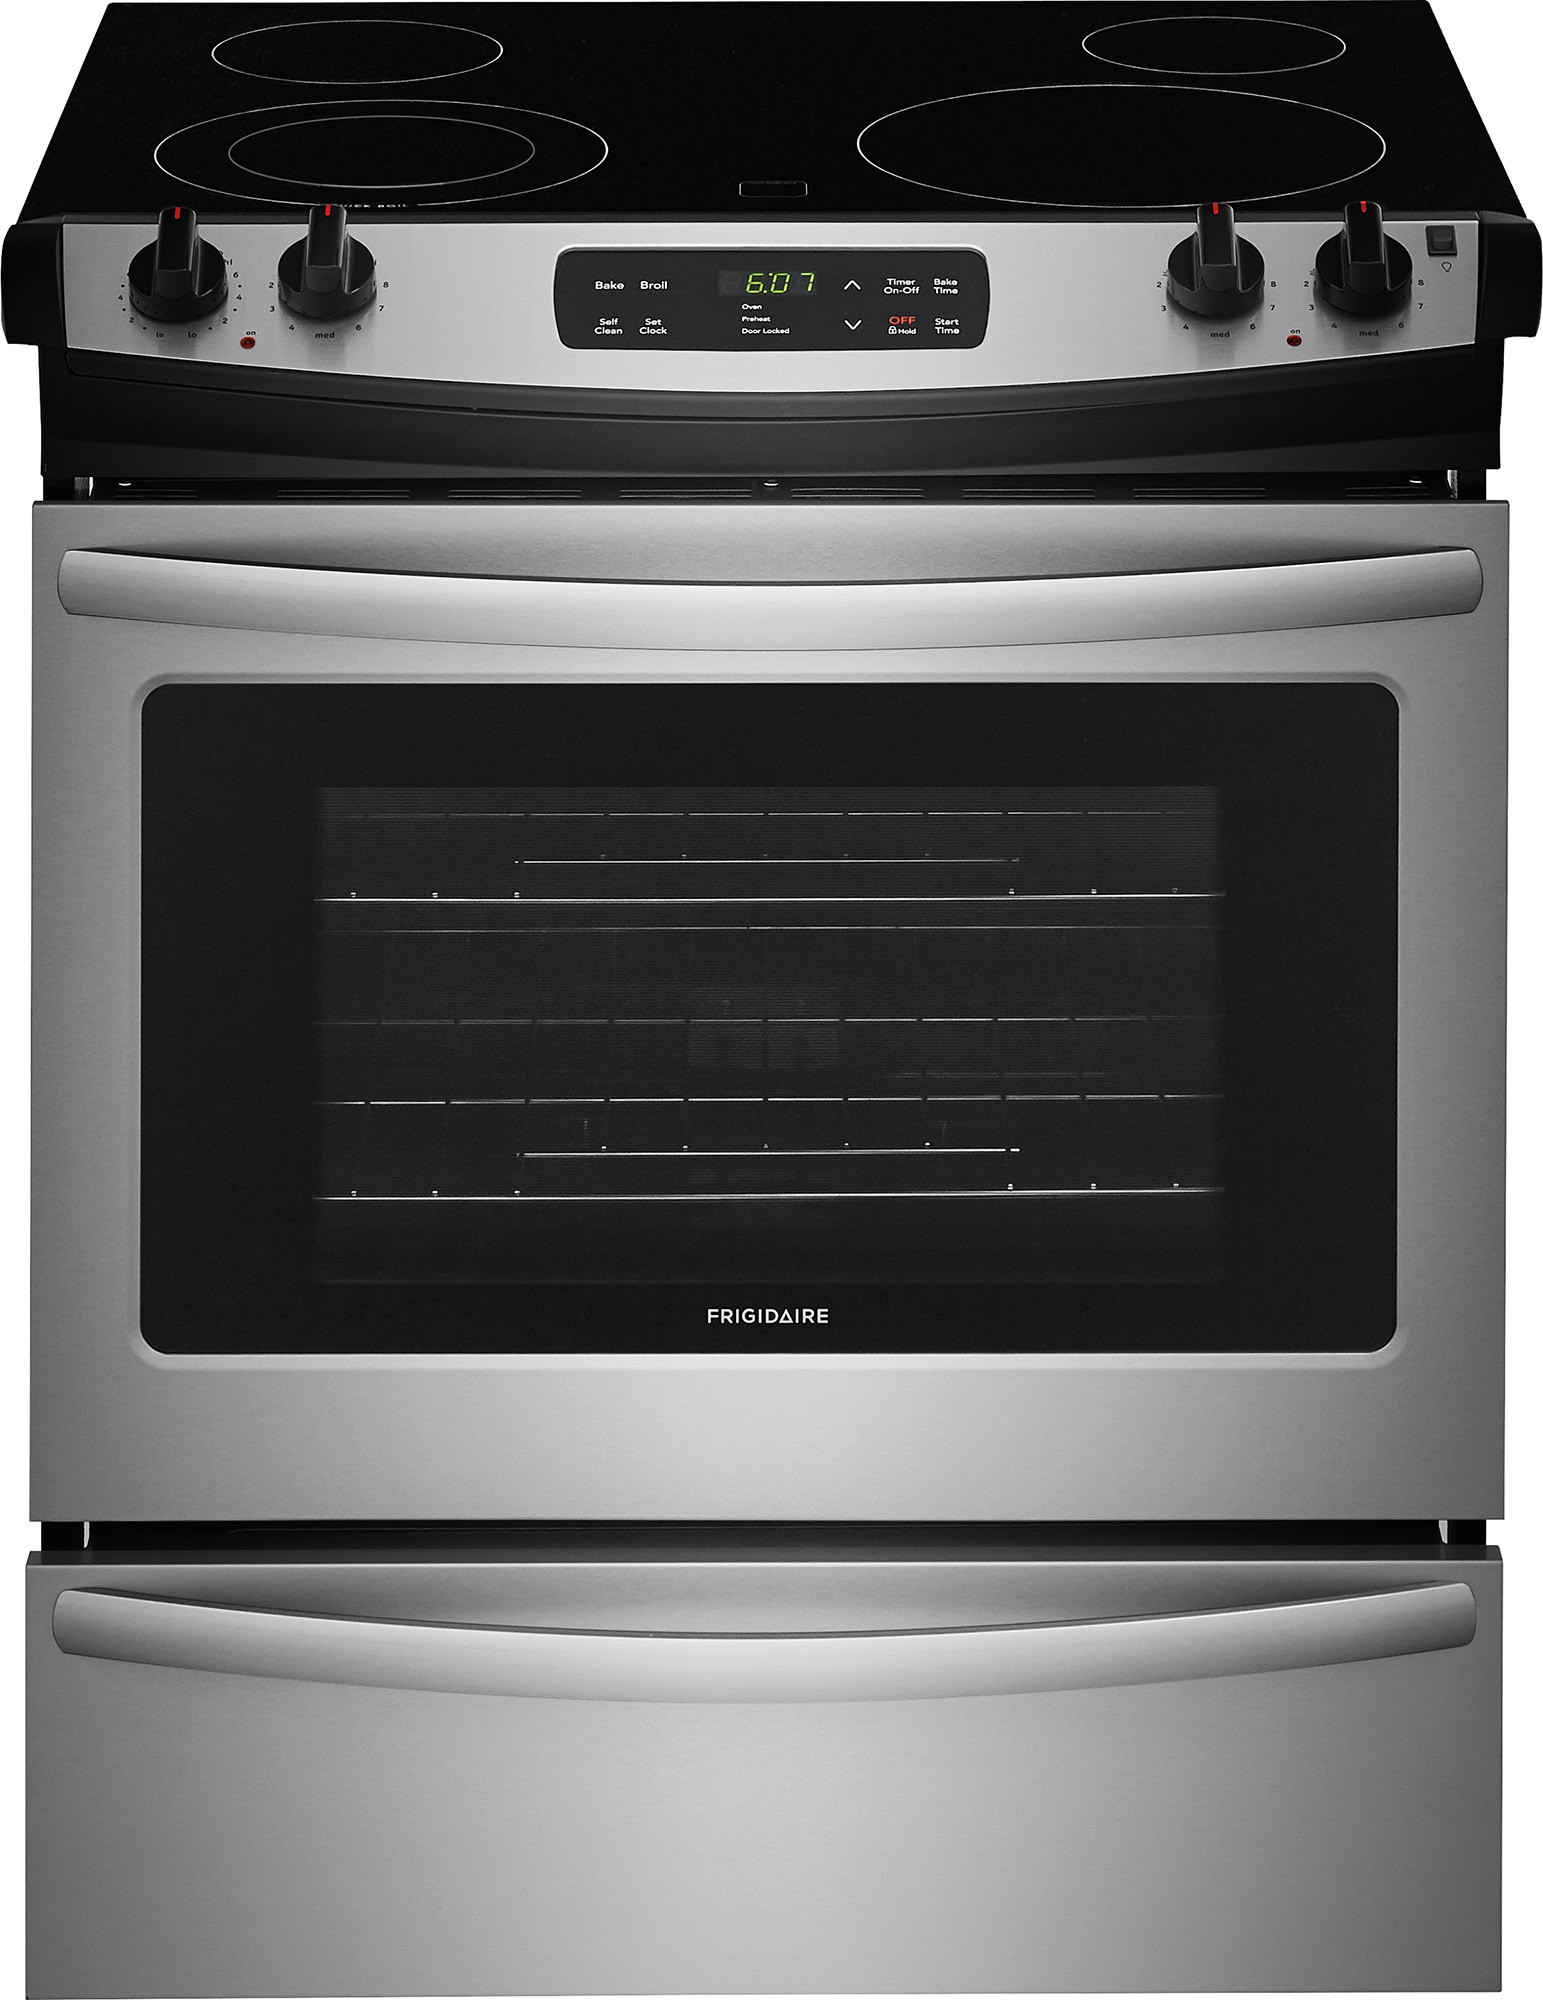 Frigidaire Ffes3026ts 30 Inch Slide In Electric Range With